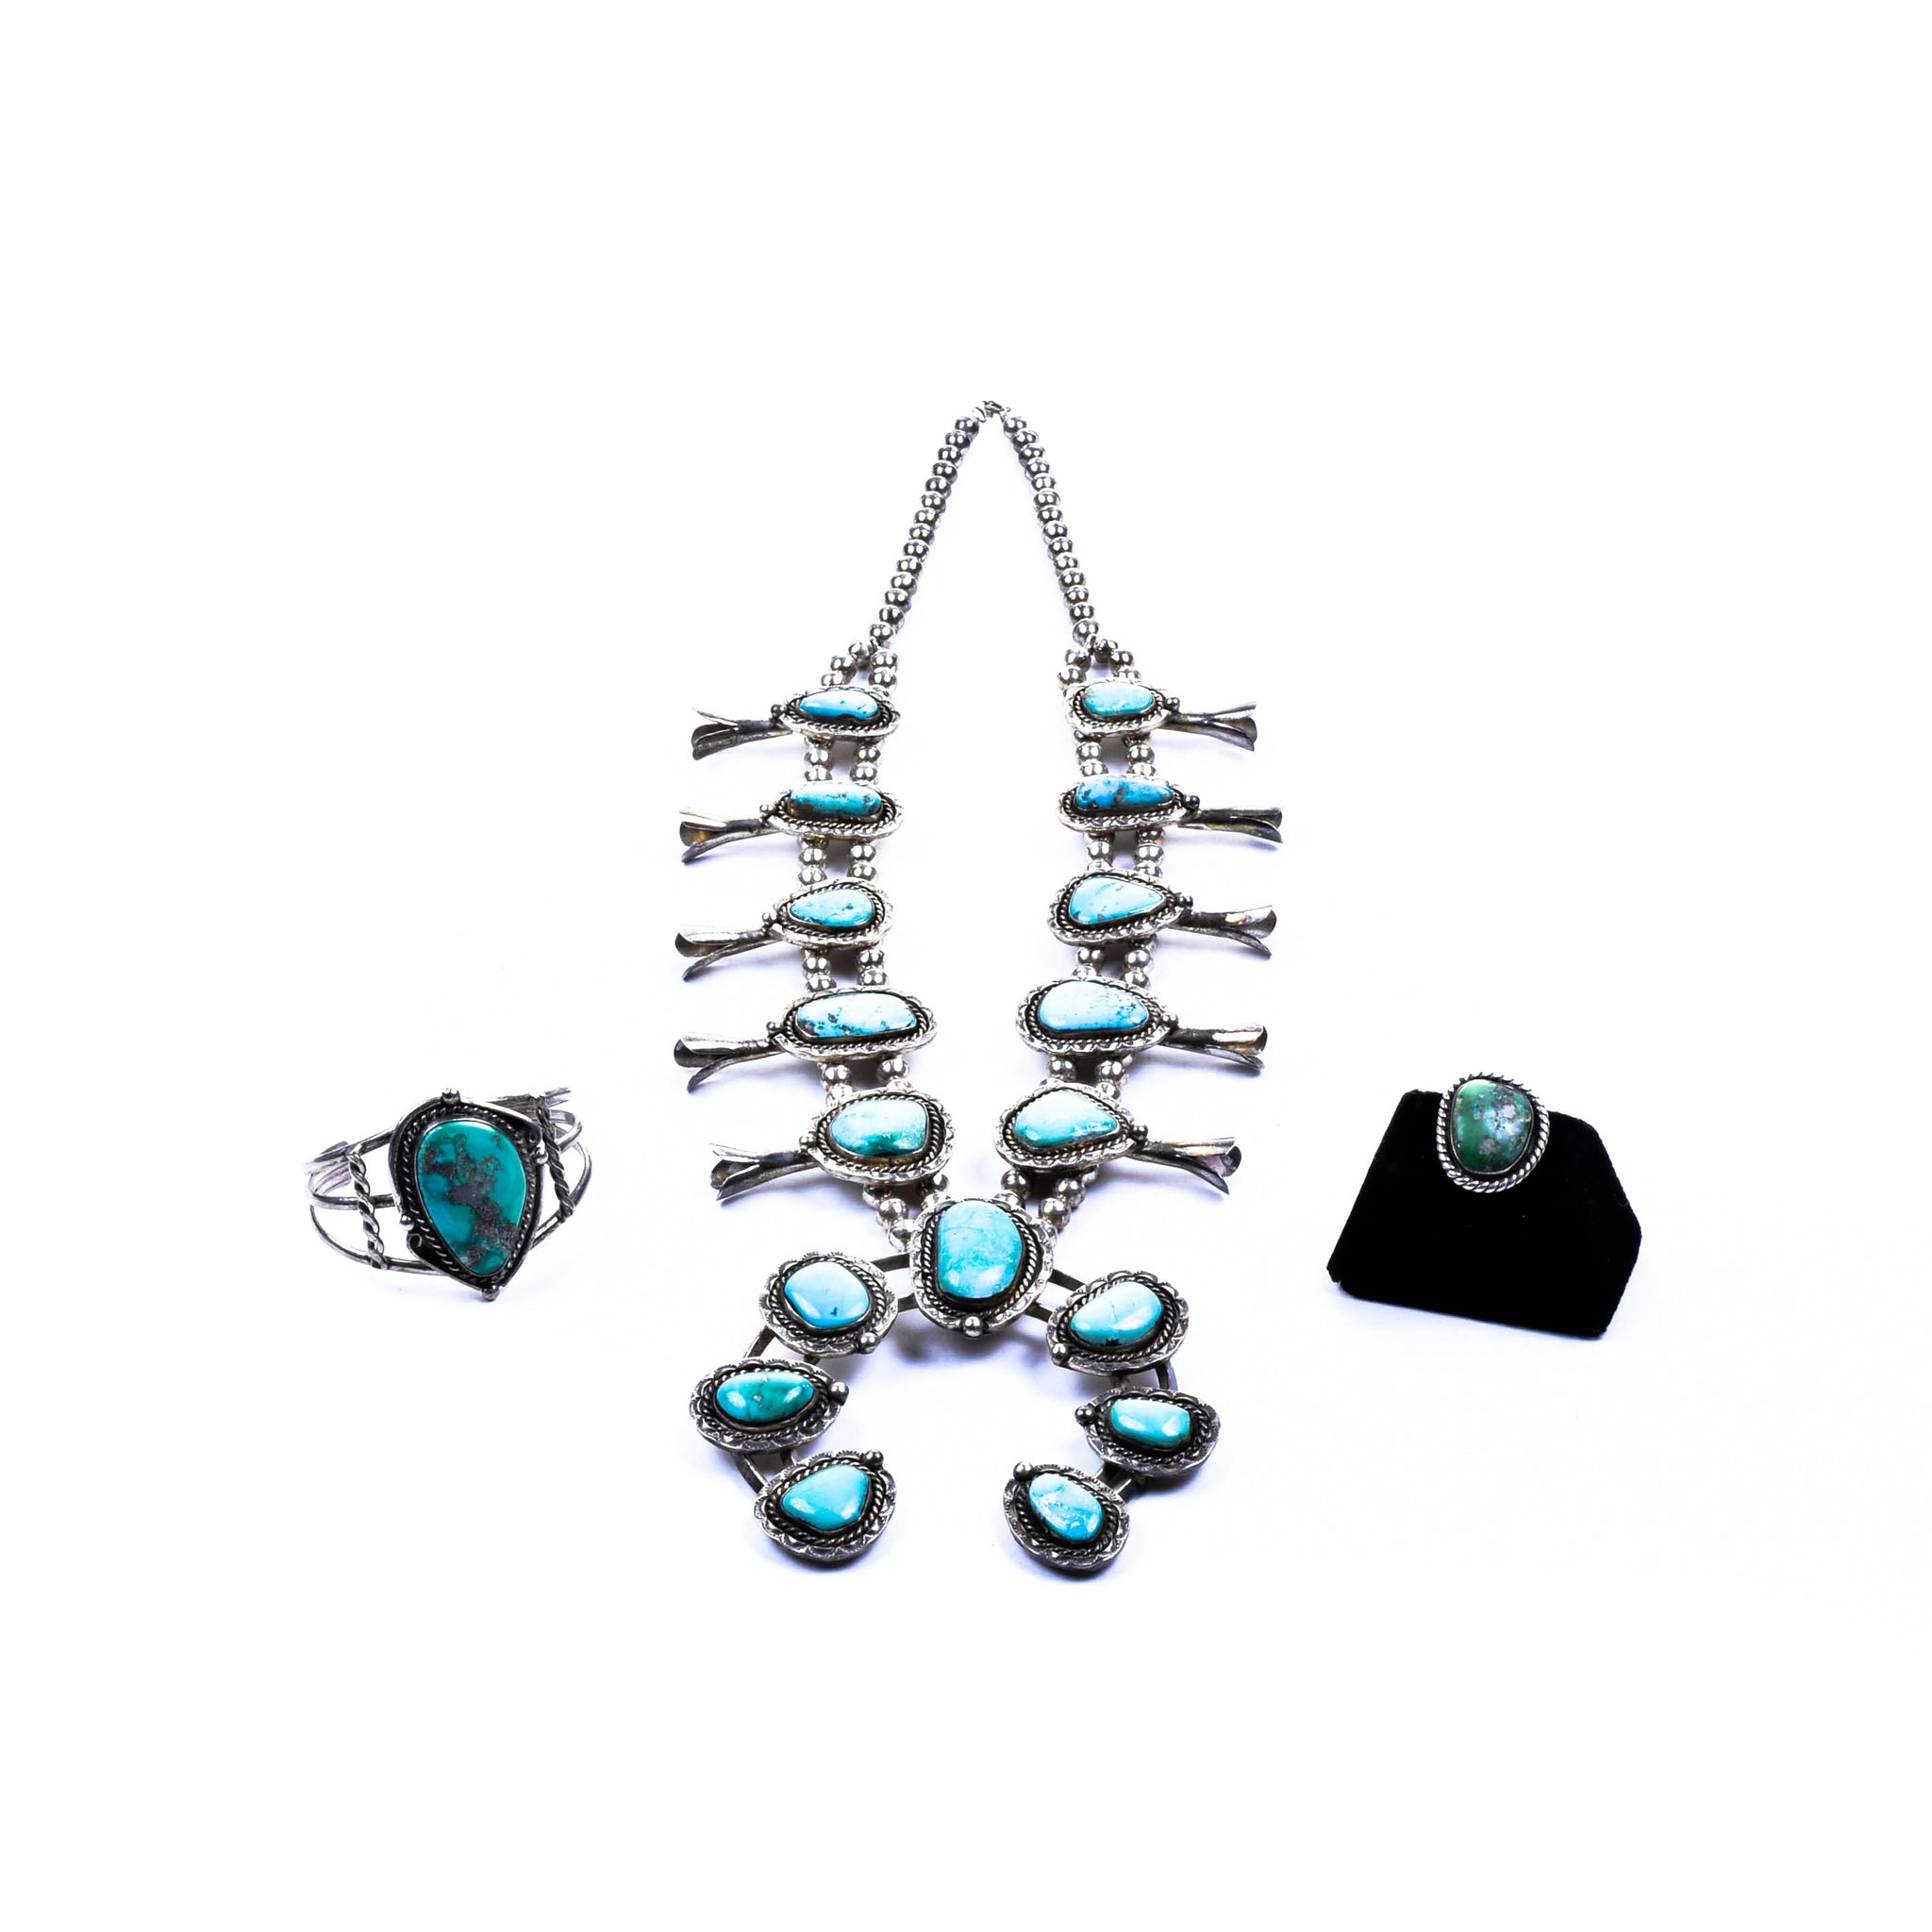 Navajo Squash Blossom Necklace Set navajo, necklaces, southwest, squash blossom, turquoise